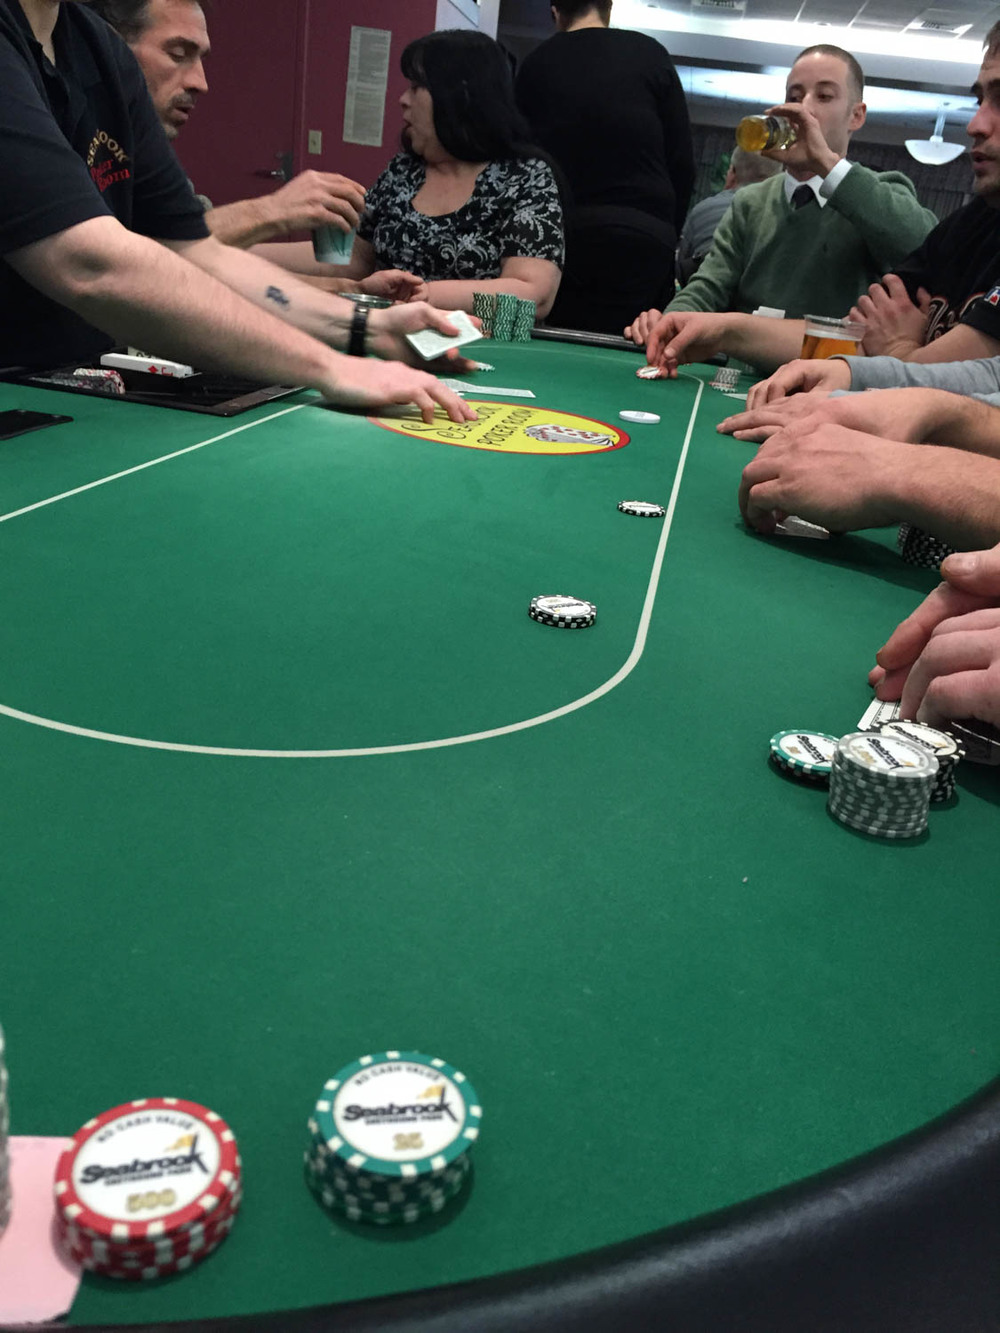 NH_Seabrook_Poker_Room_IMG_4722.jpg